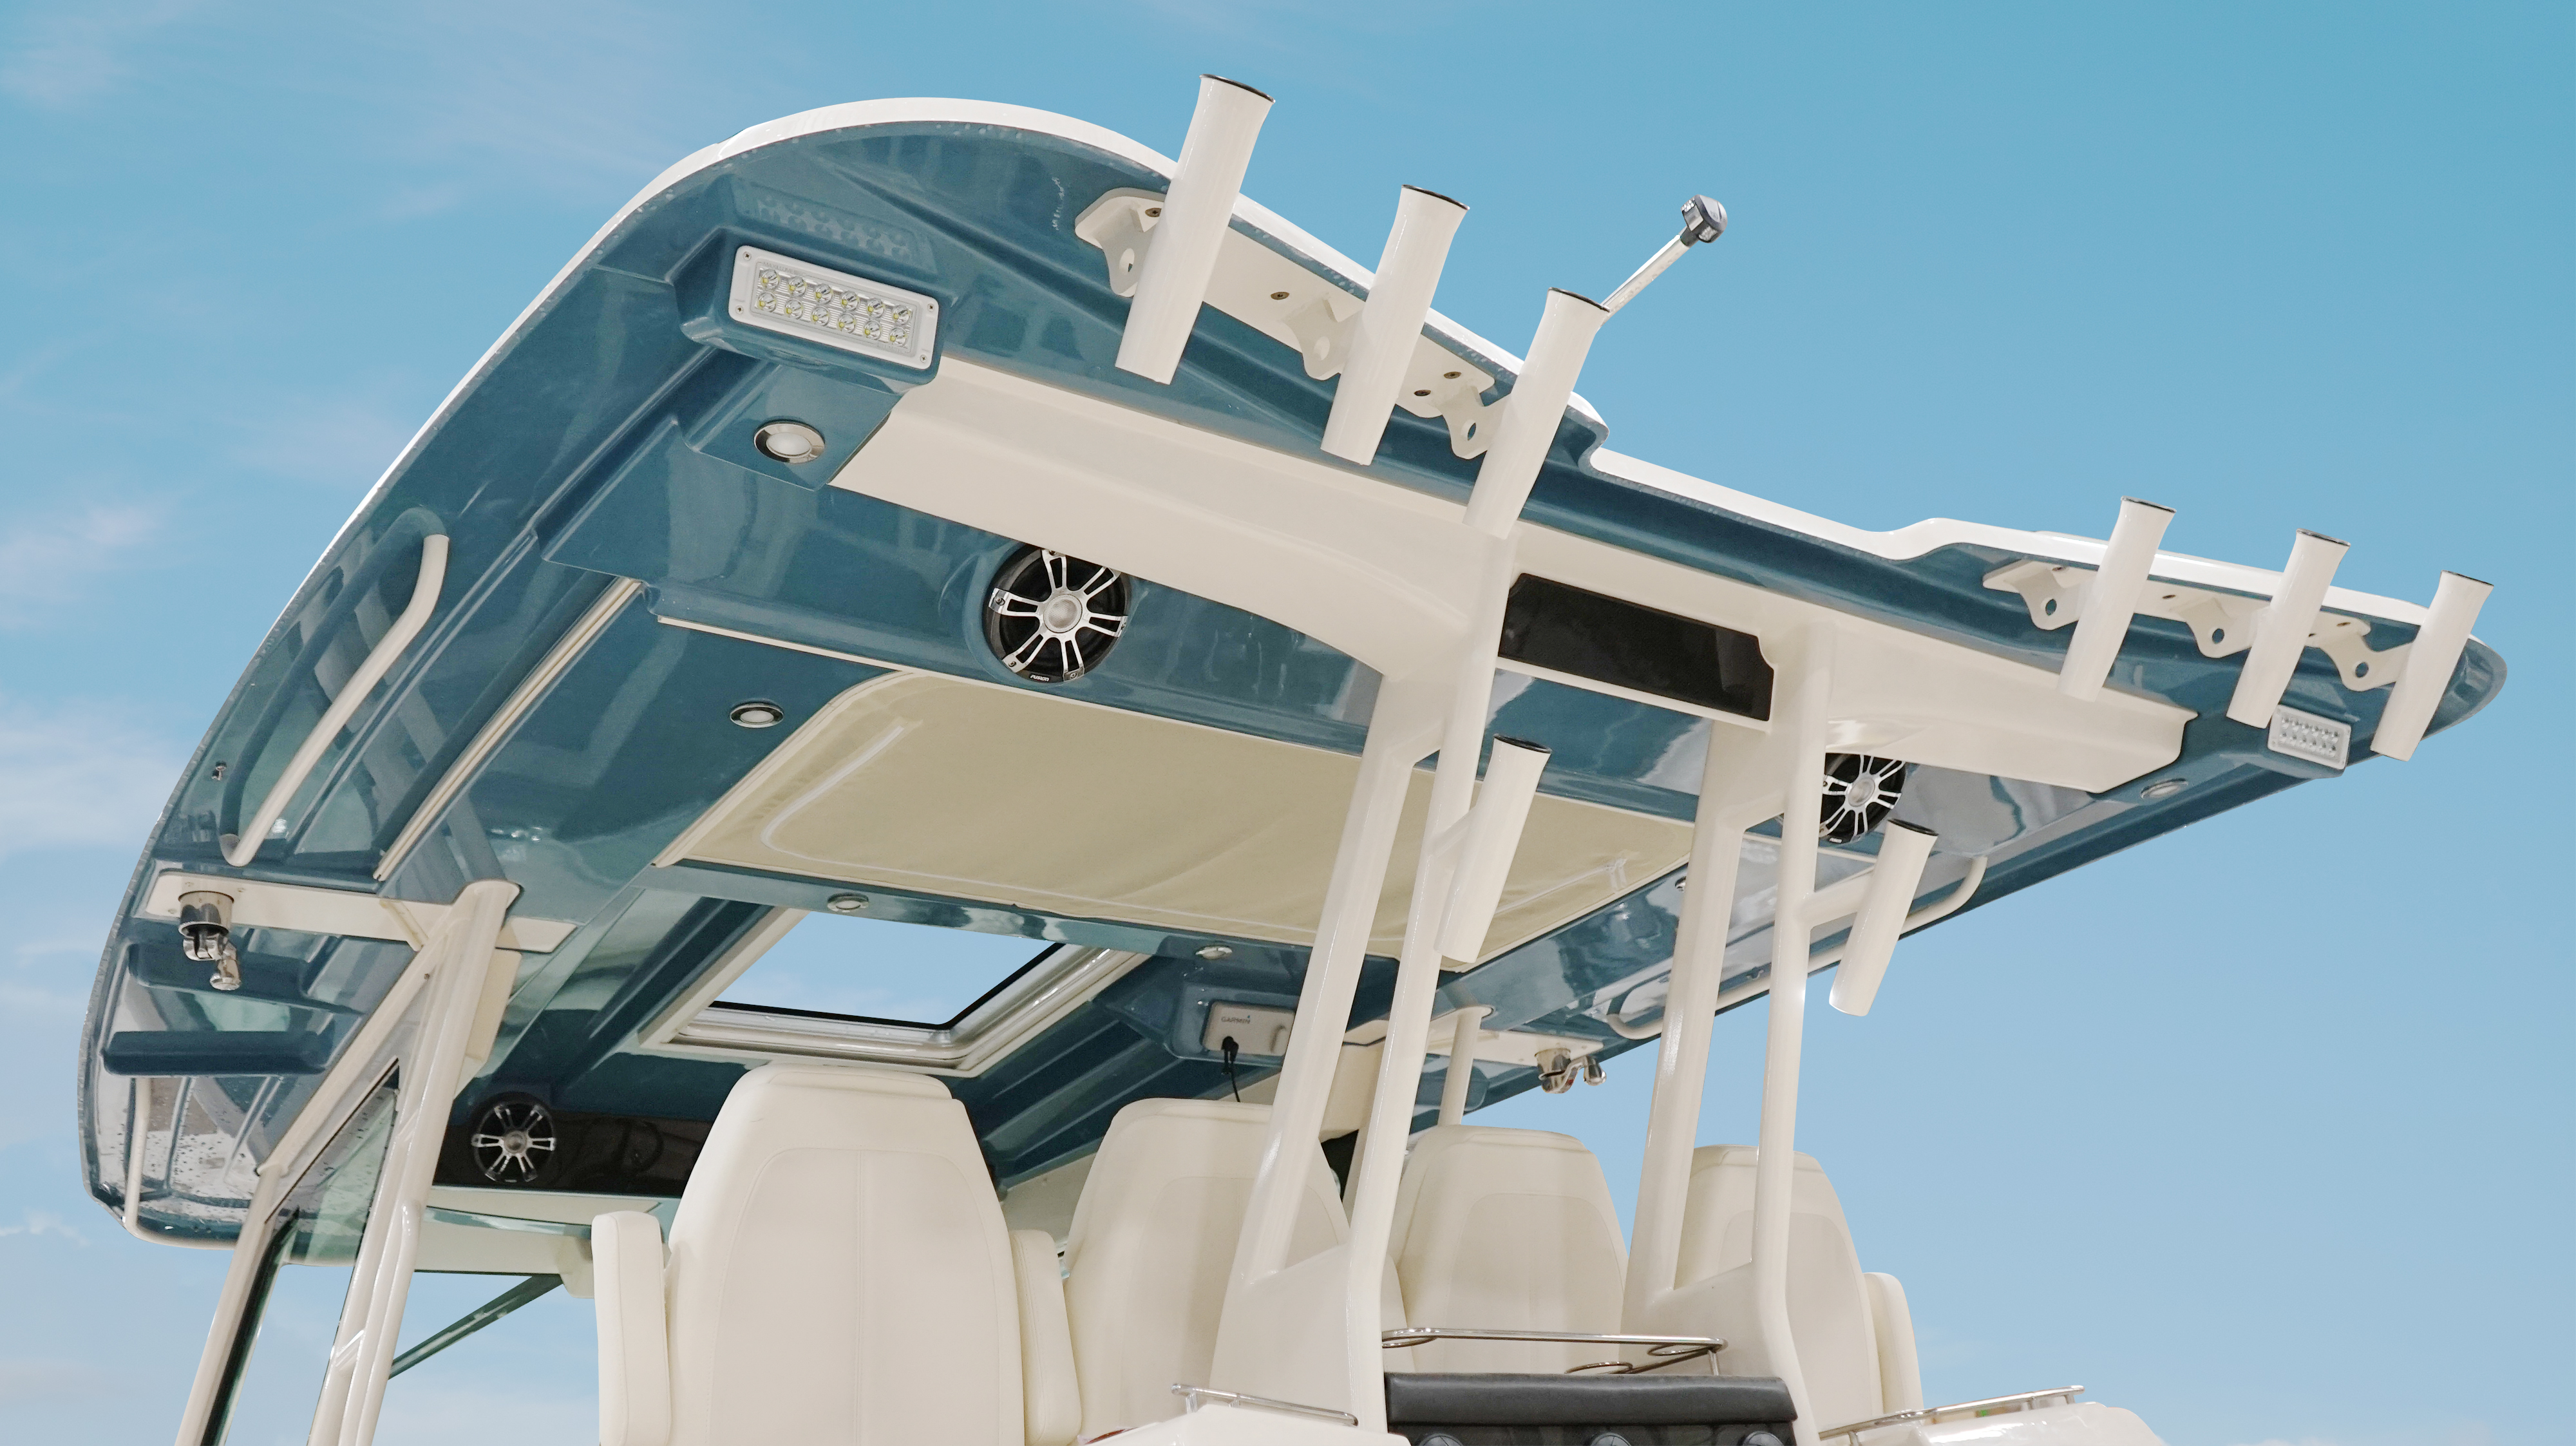 Grady-White Canyon 456, 45-foot center console T-Top with paint to match hull color